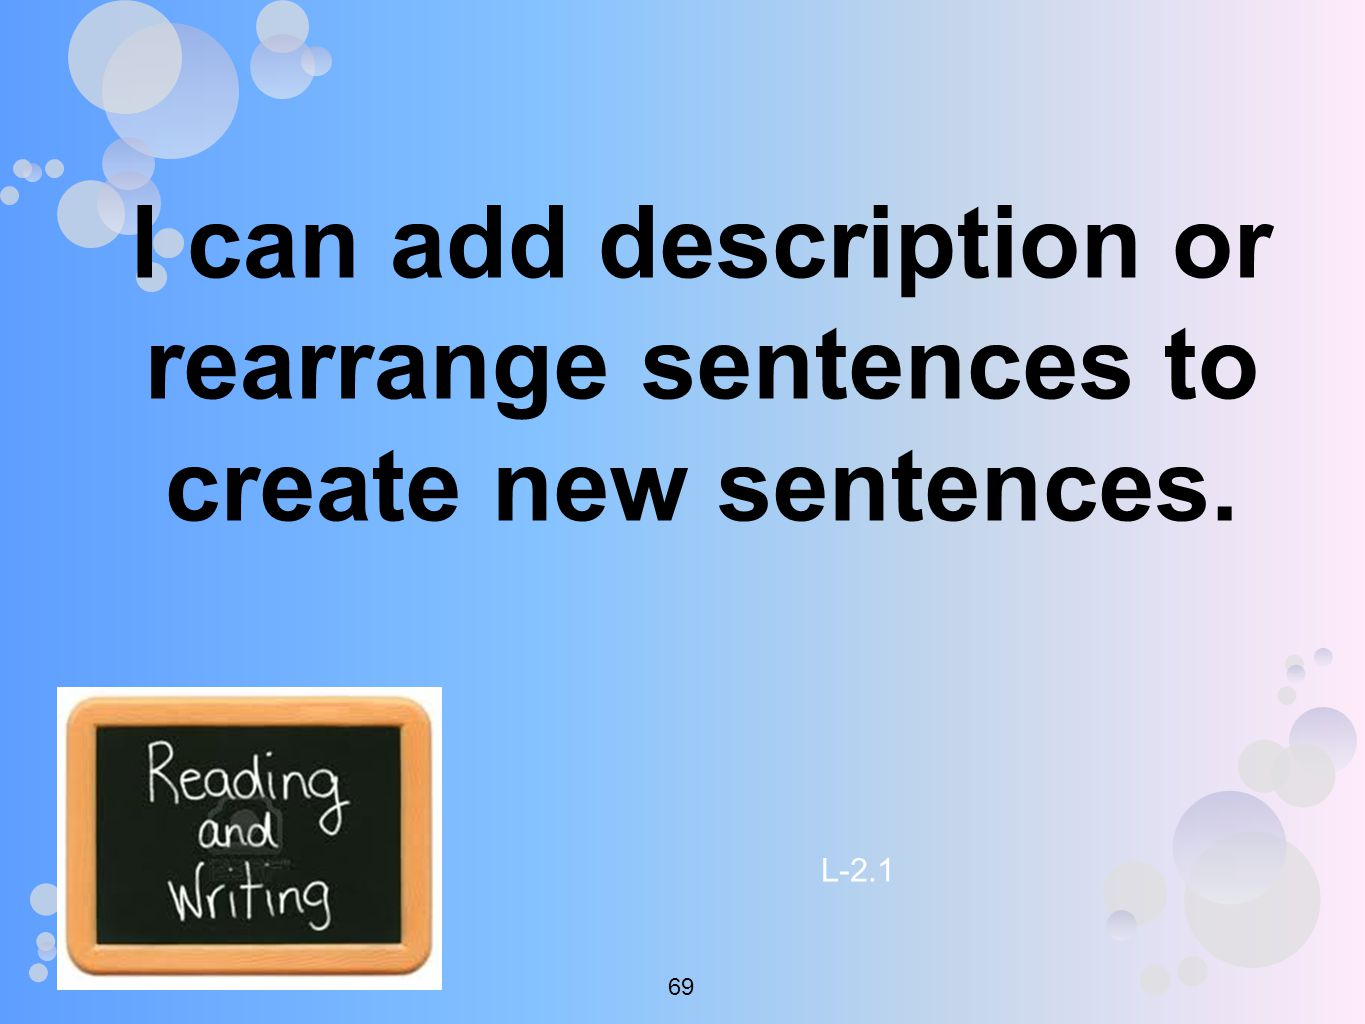 I can add description or rearrange sentences to create new sentences. L